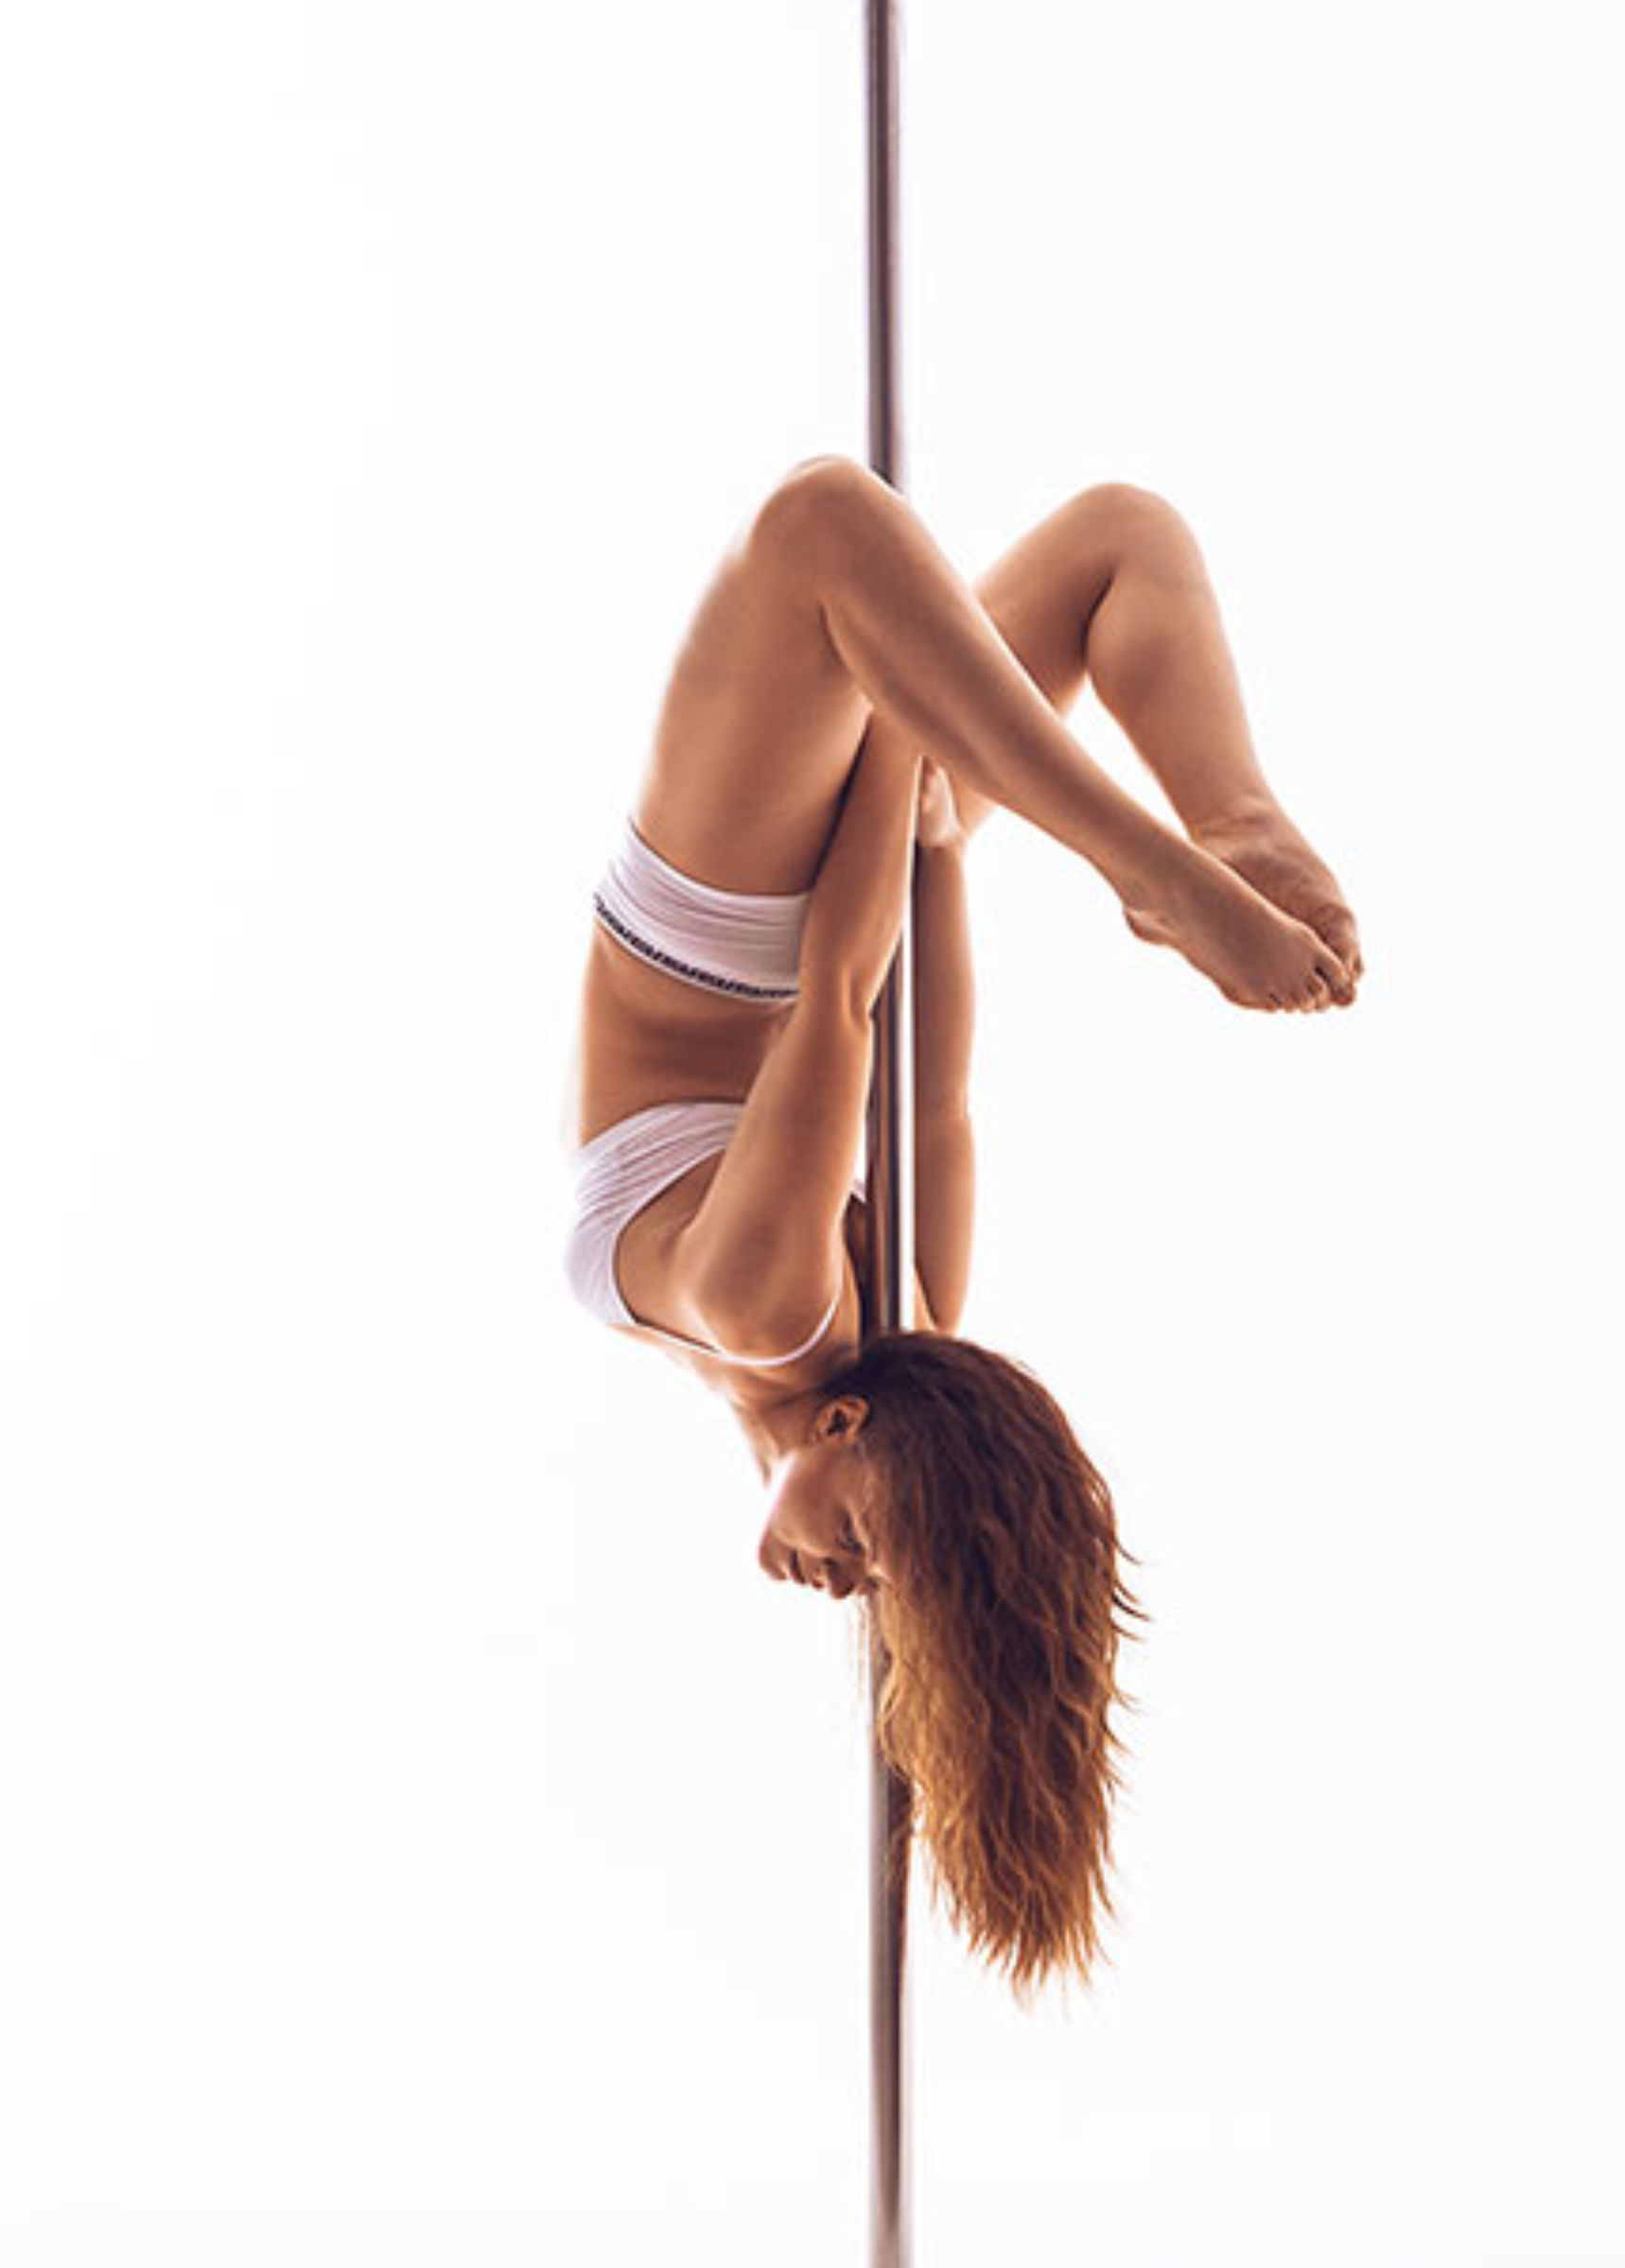 Pole Dance Class Hen Party Edinburgh